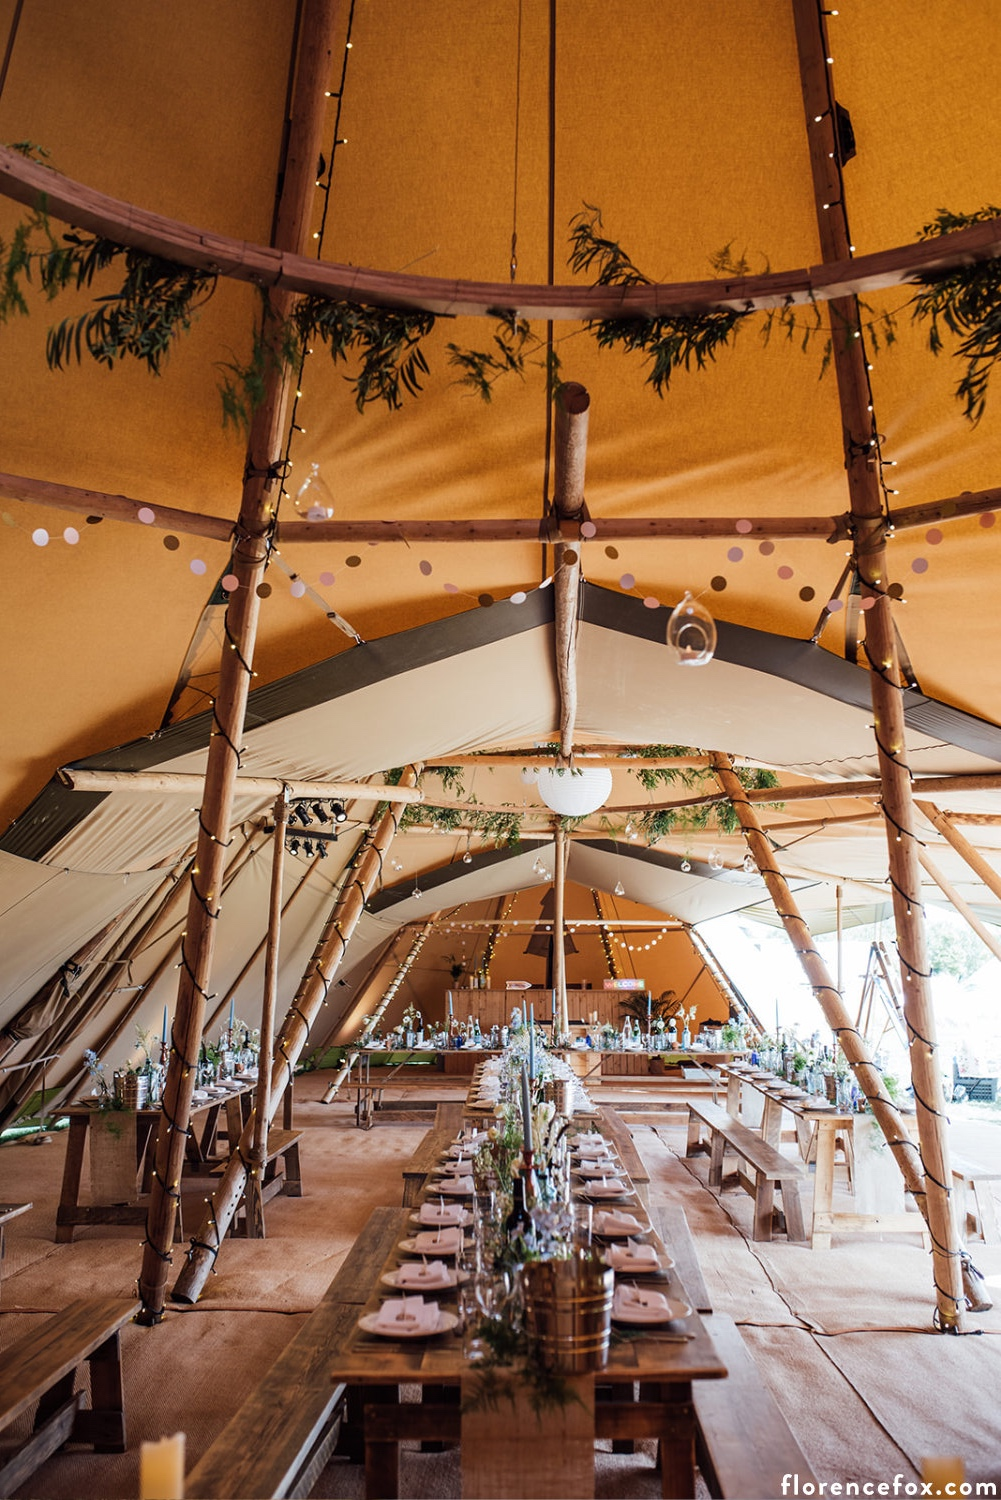 Bristol_tipi_wedding.jpg